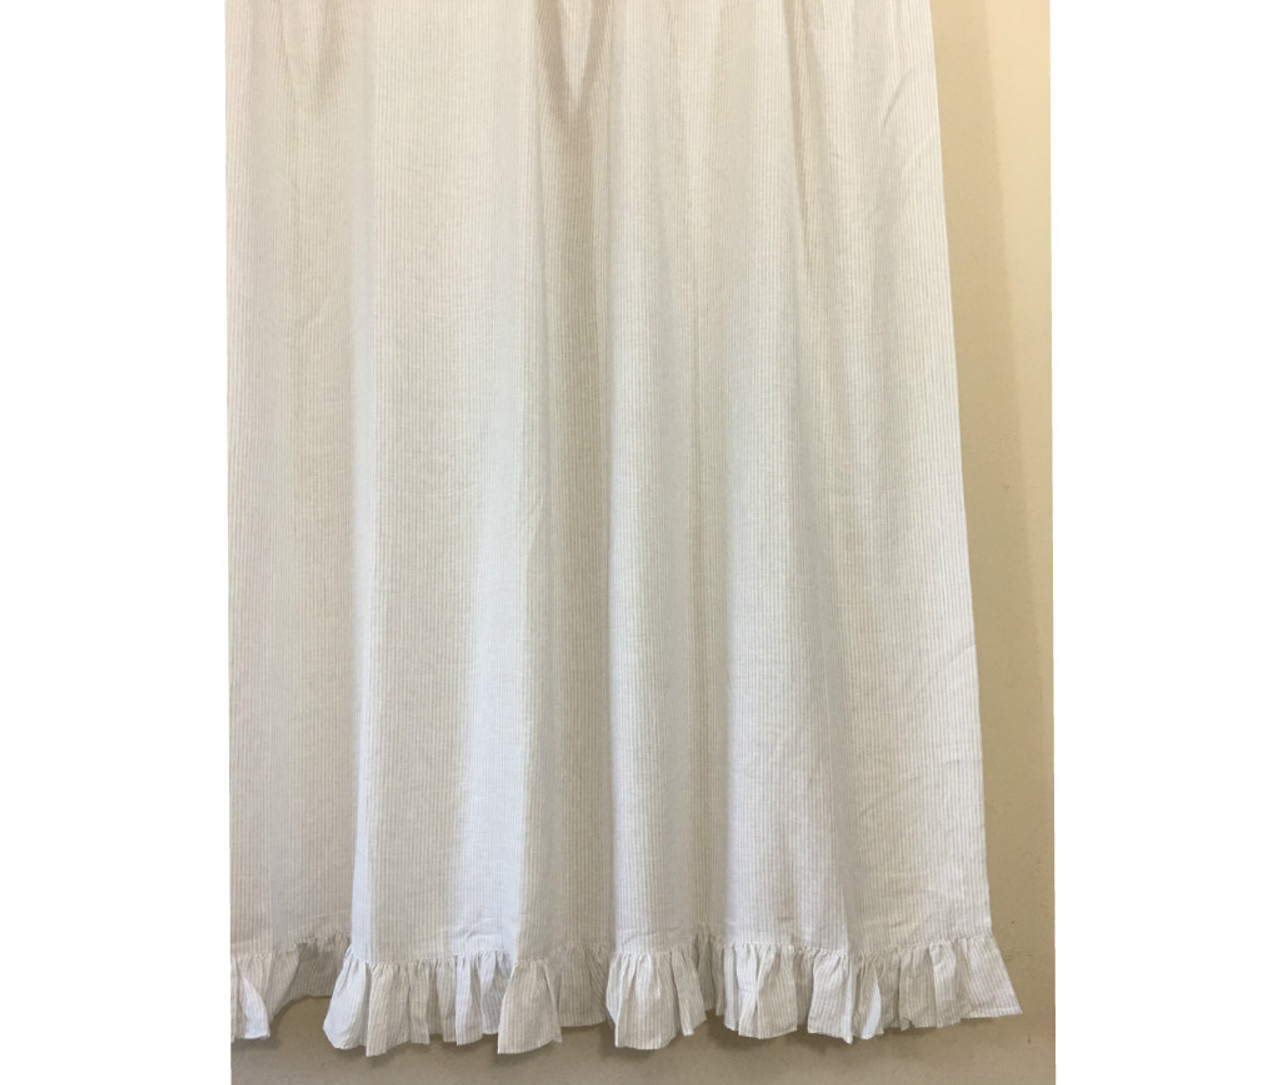 Stone Grey And White Ticking Striped Linen Shower Curtain With Self Ruffles